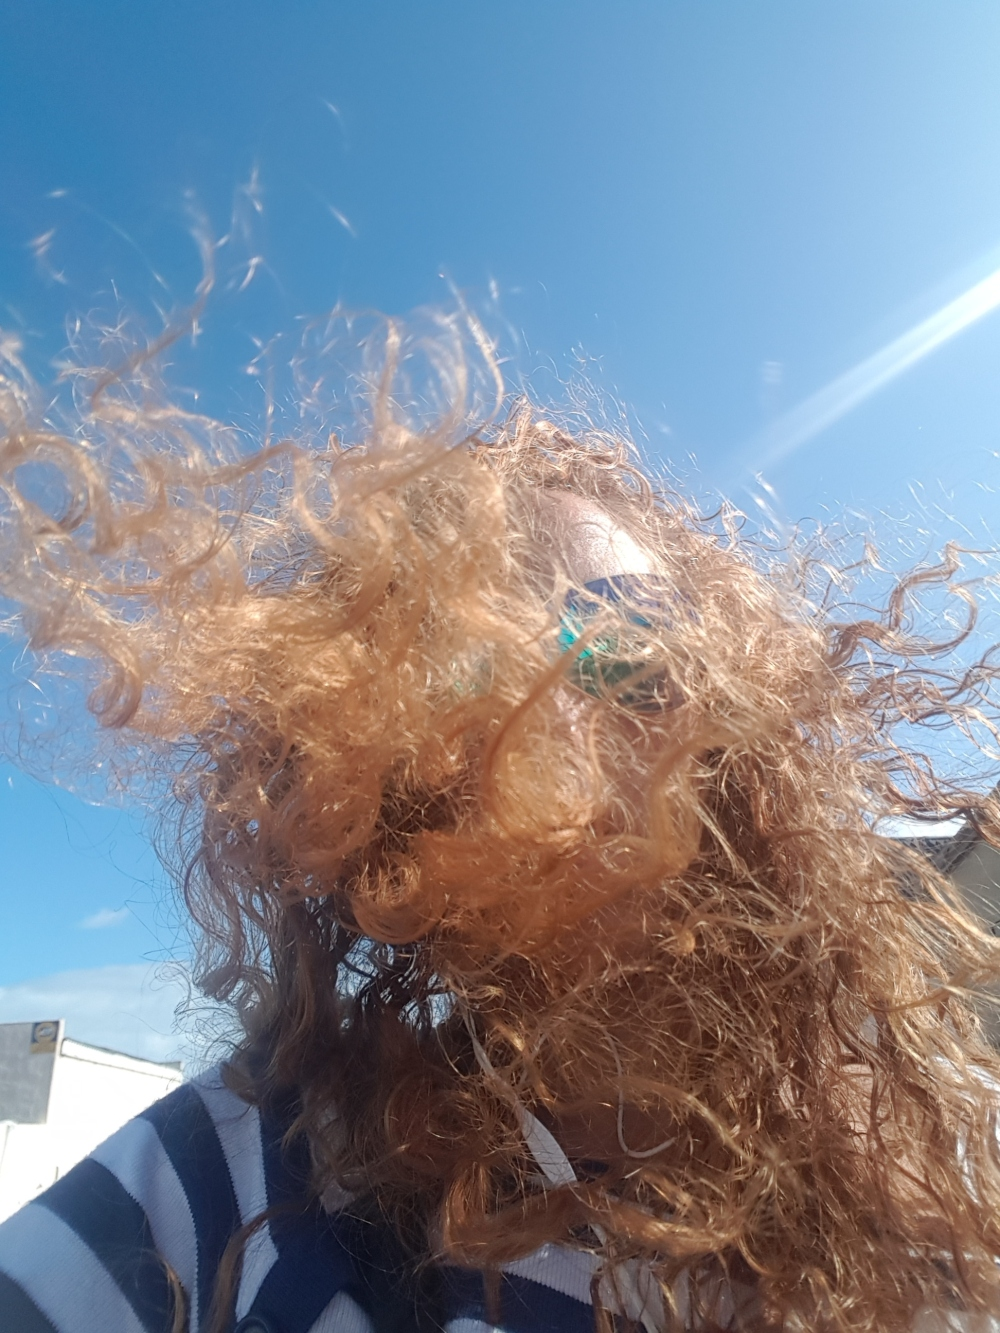 The wind in Cape Town can get crazy